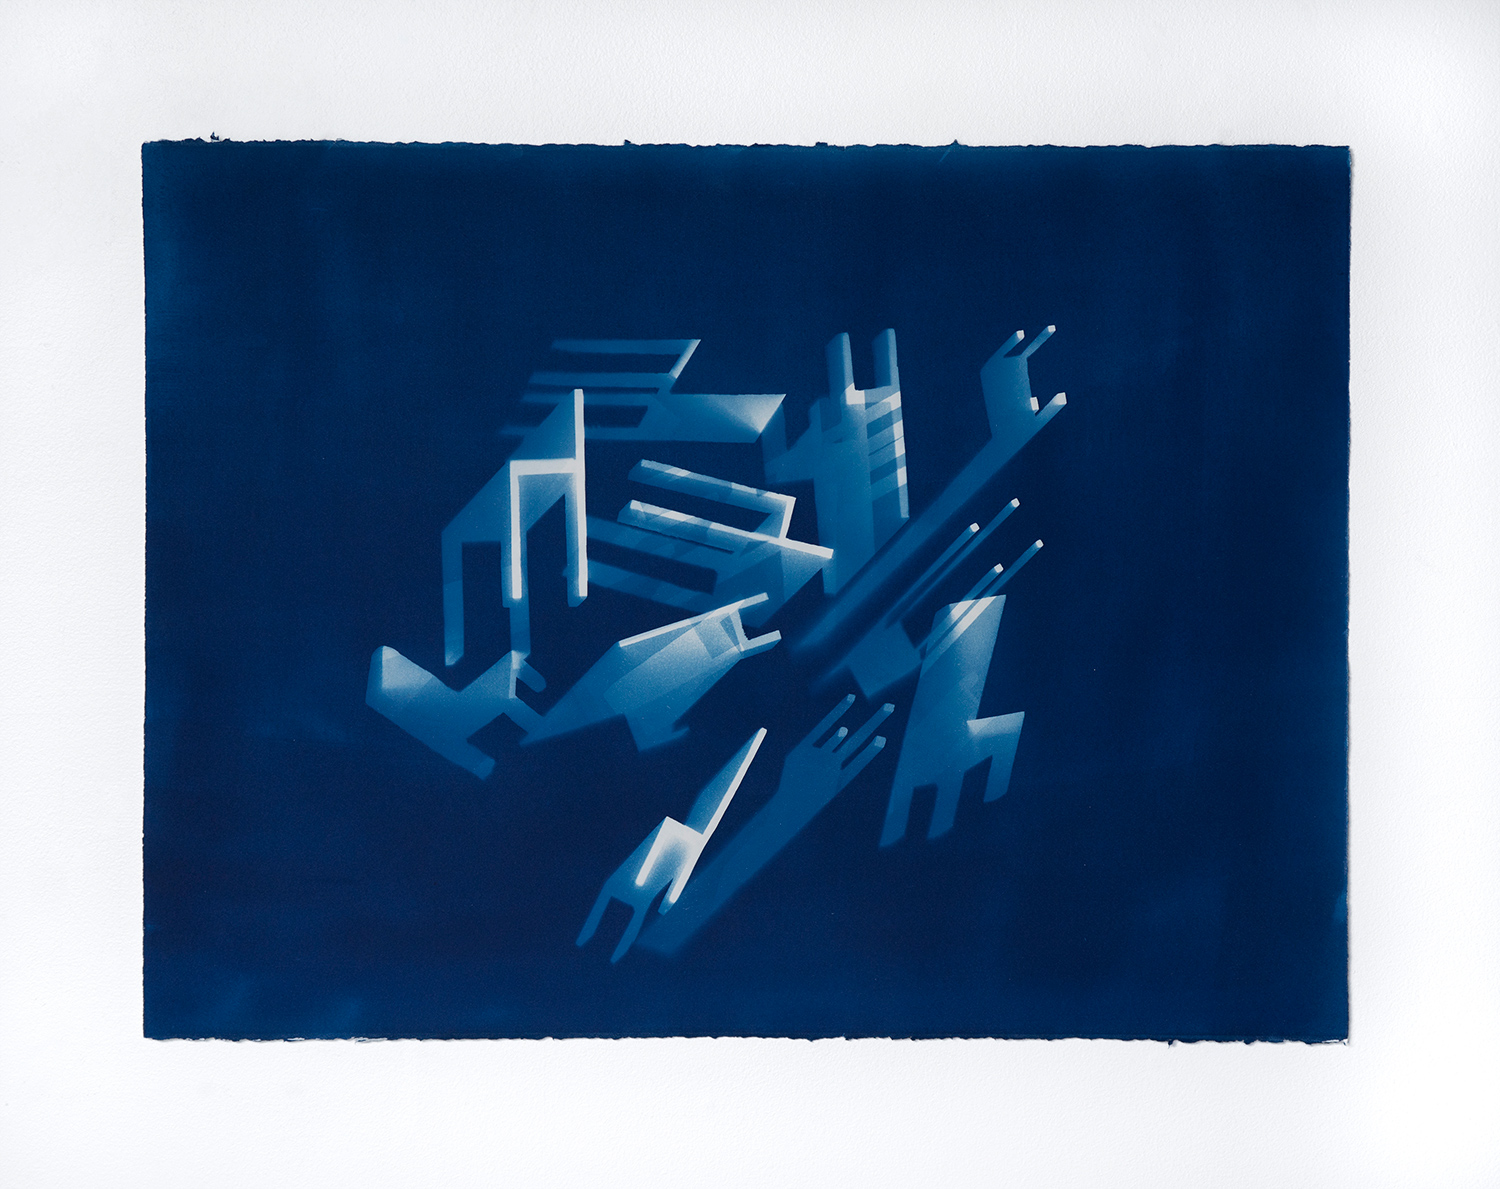 Free Fall #1  I  2014  I  cyanotype print on paper  I  30 x 22